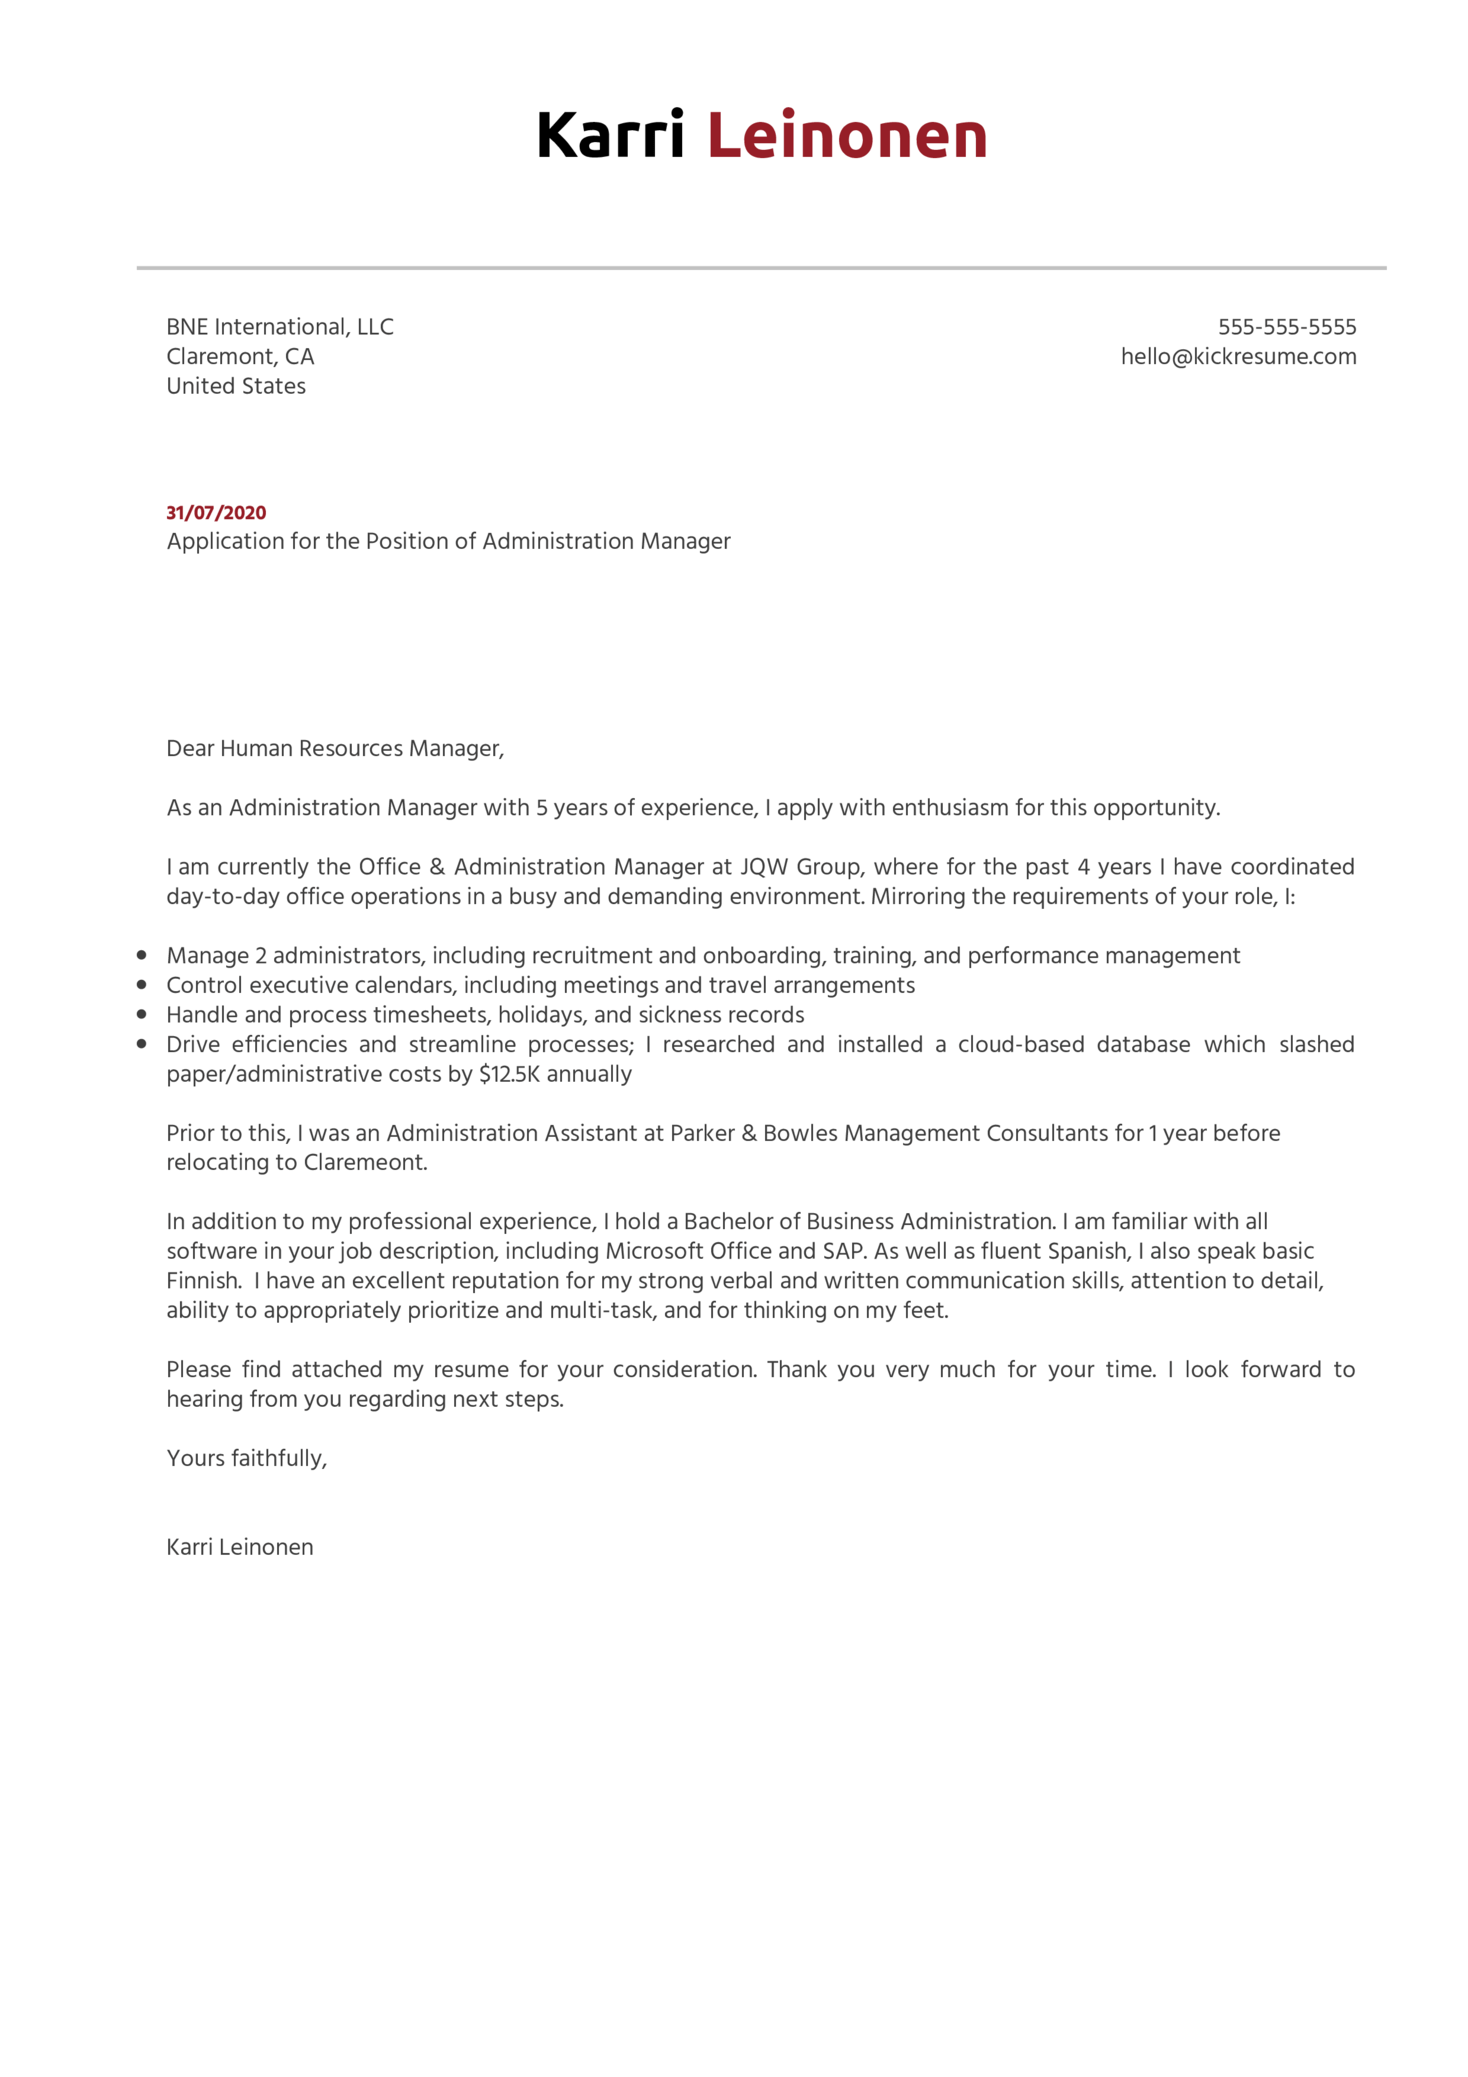 Administration Manager Cover Letter Example